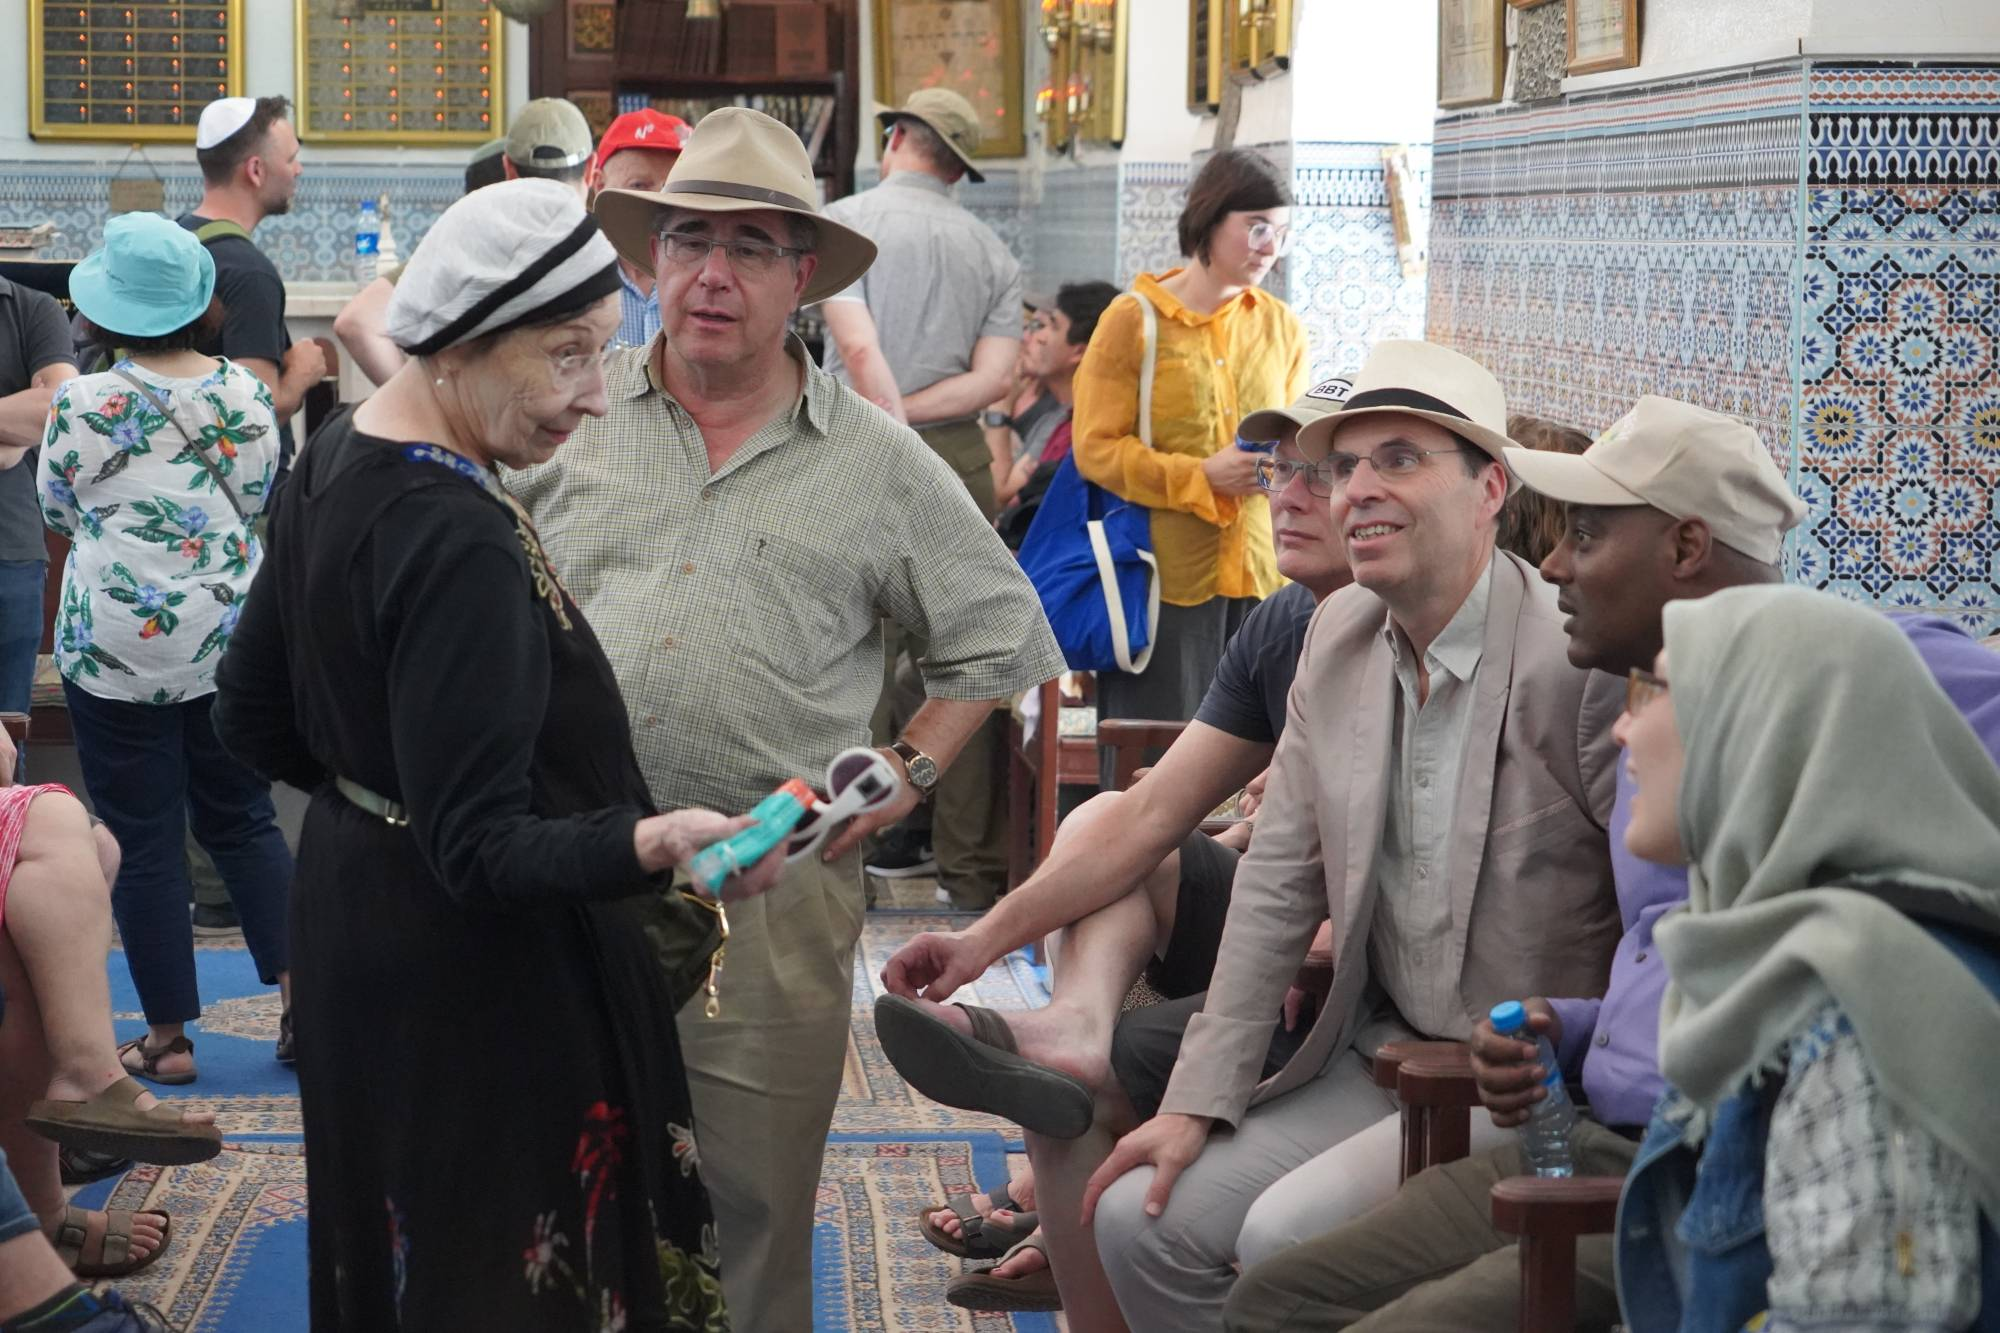 Group discussion in synagogue